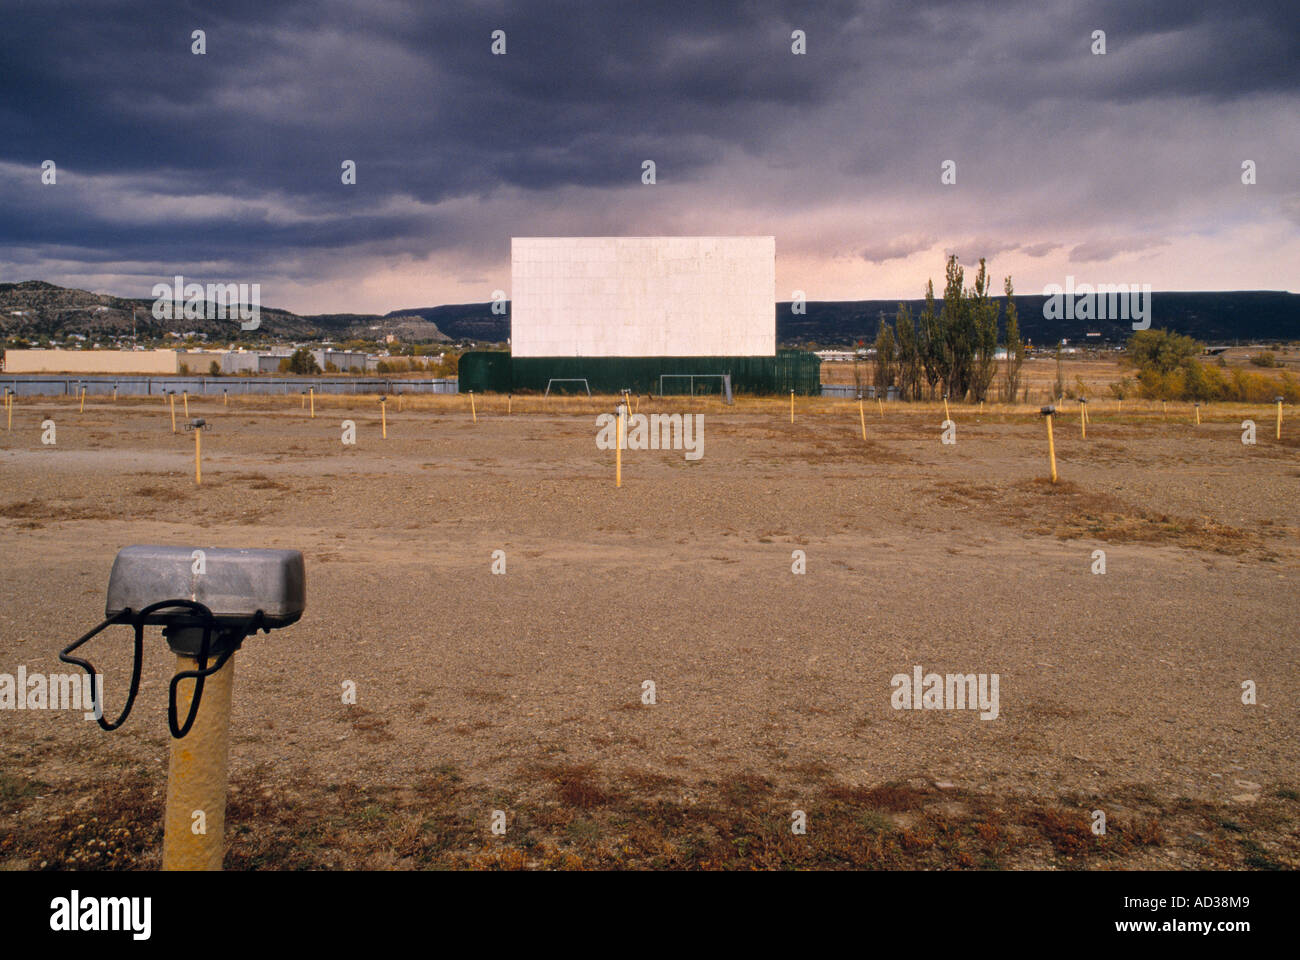 An Old Drive In Movie Theater With Stormy Skies In The Background Stock Photo Alamy